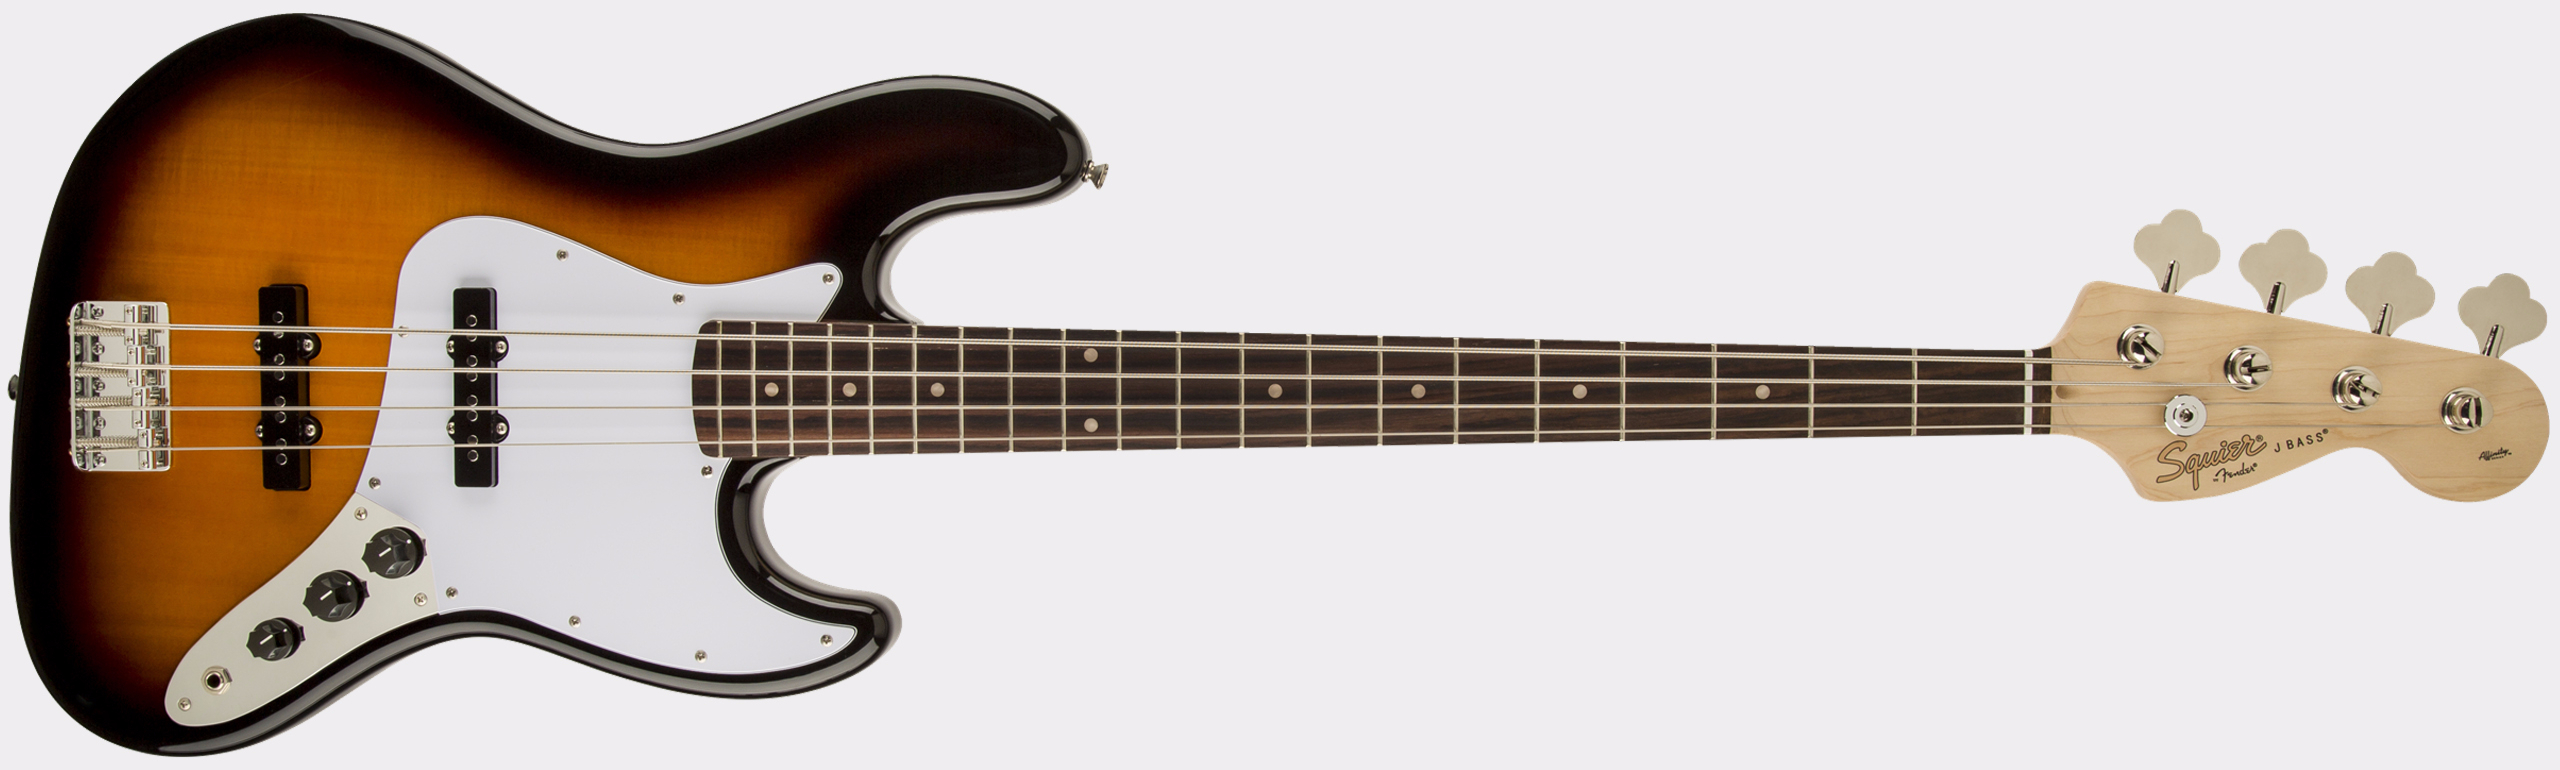 SQUIER Affinity Series Jazz Bass RW Brown Sunburst